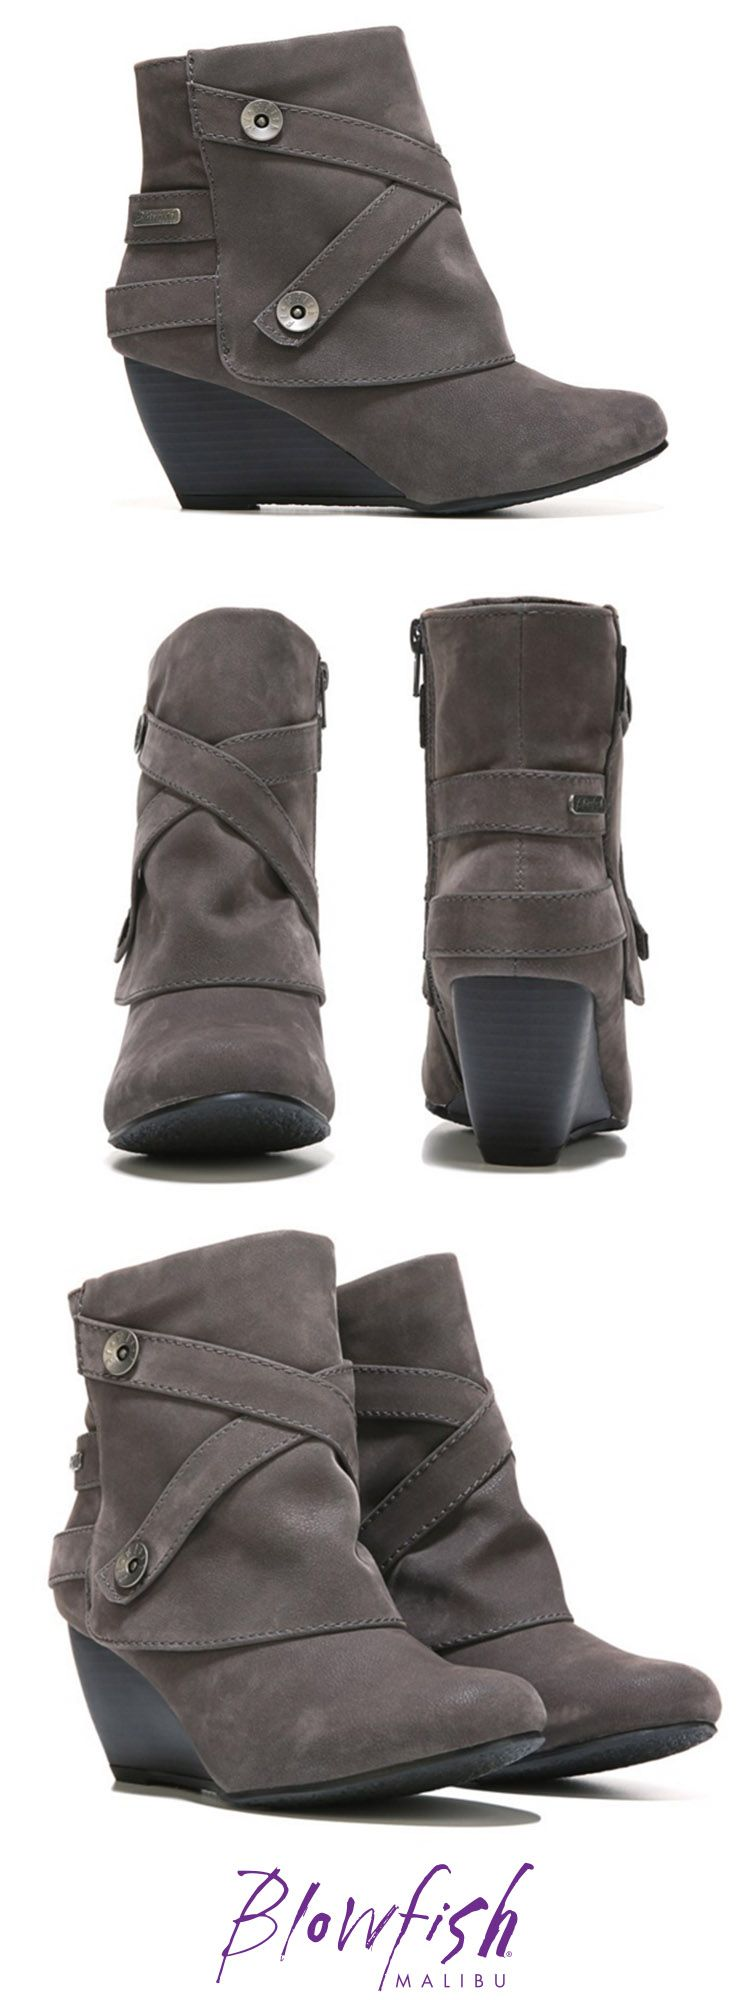 Now this is a Blowfish Shoes wedge you have to grab! The Batone wedge bootie is all things edgy and fabulous! Two criss-cross button straps decorate the shaft of this bootie for extra detail. The Blowfish Batone has a heel height of about 2 inches.